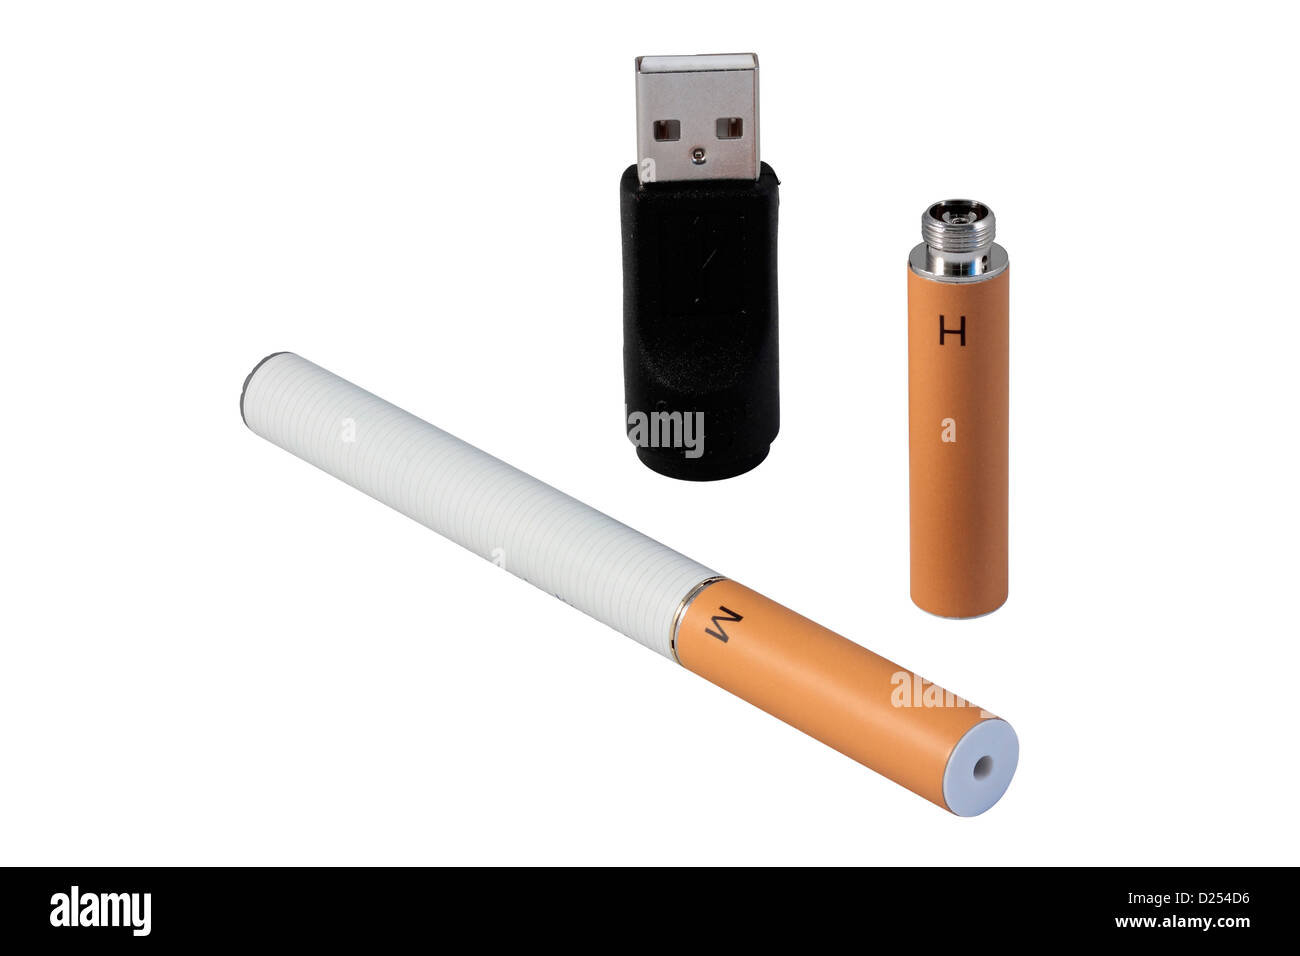 e cigarette, battery, nicotine cartridge and USB charger isolated on white background - Stock Image